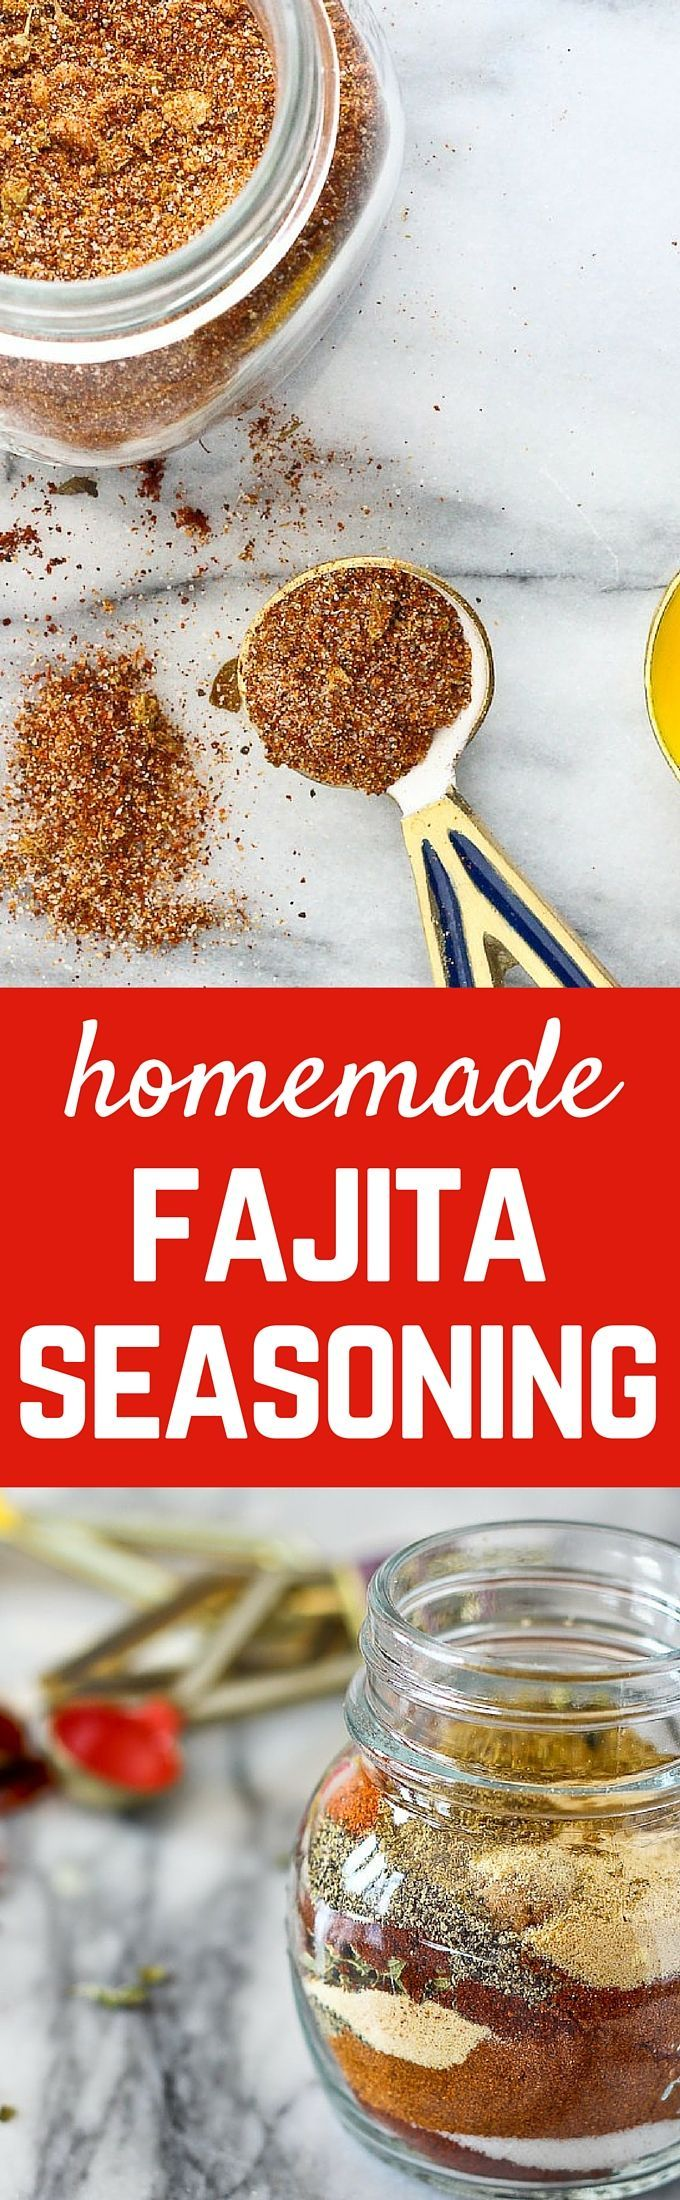 Making homemade fajita seasoning is so easy! No additives or artificial anything! Try it and you'll never go back to store bought packets. Get the EASY recipe on http://RachelCooks.com!